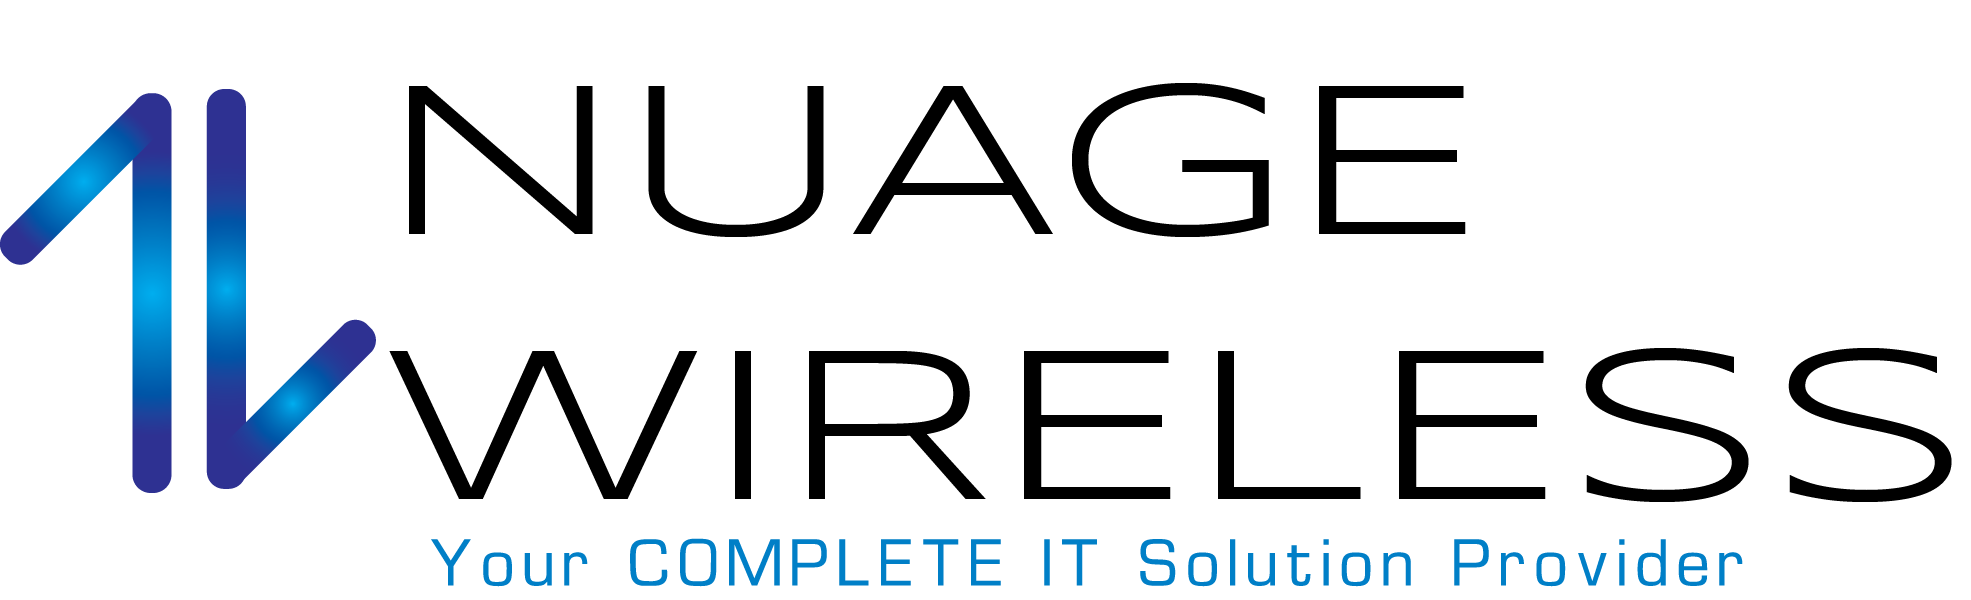 NUage Wireless LLC